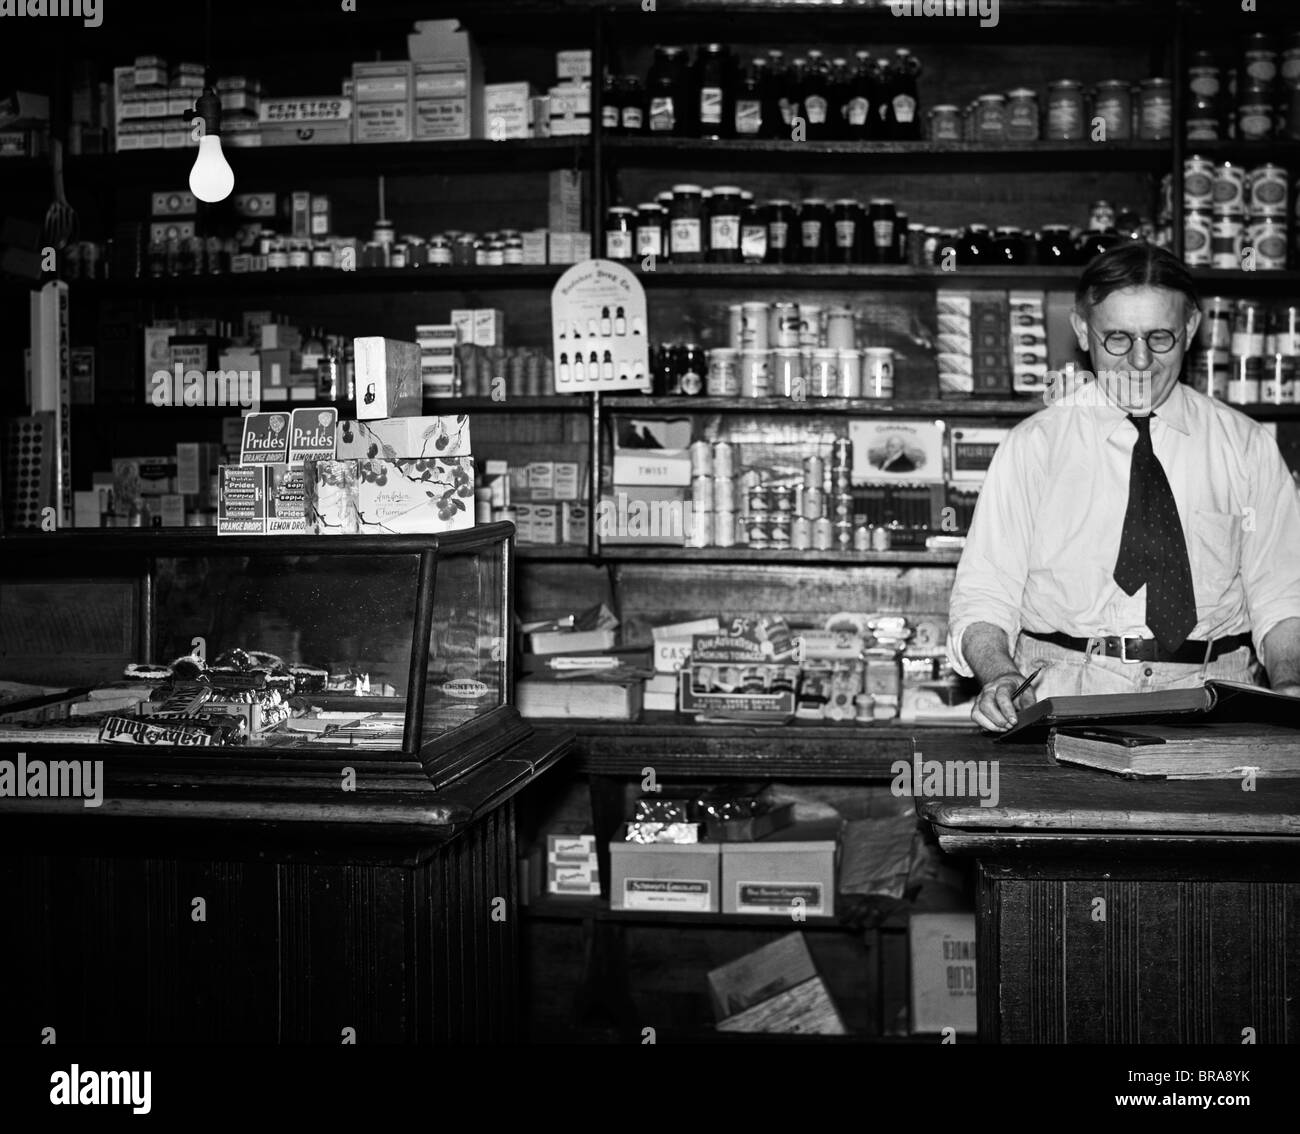 General Store Stock Photos General Store Stock Images: 1930s GENERAL STORE INTERIOR GROCER OWNER BEHIND COUNTER